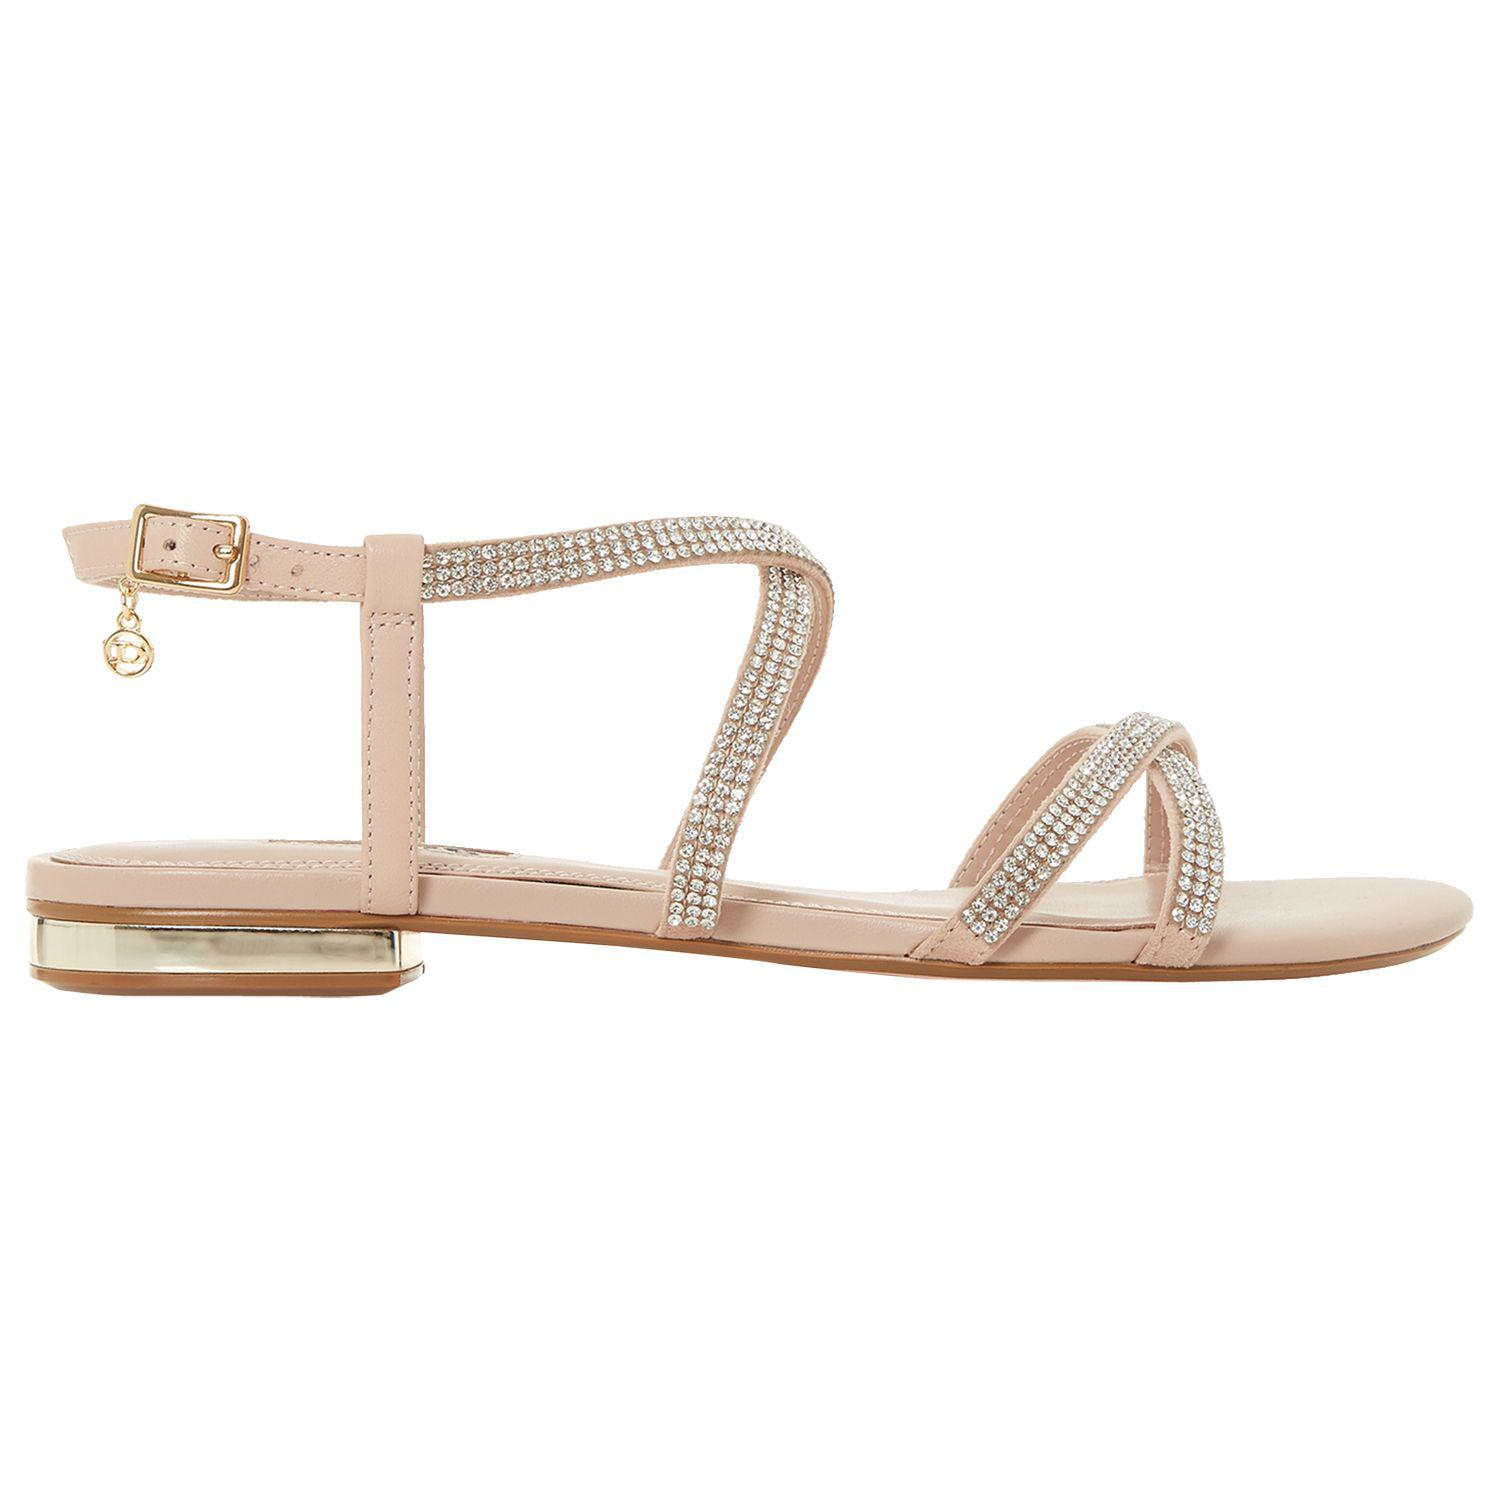 abe1662f8060a Dune Neve Cross Strap Embellished Sandals in Natural - Lyst